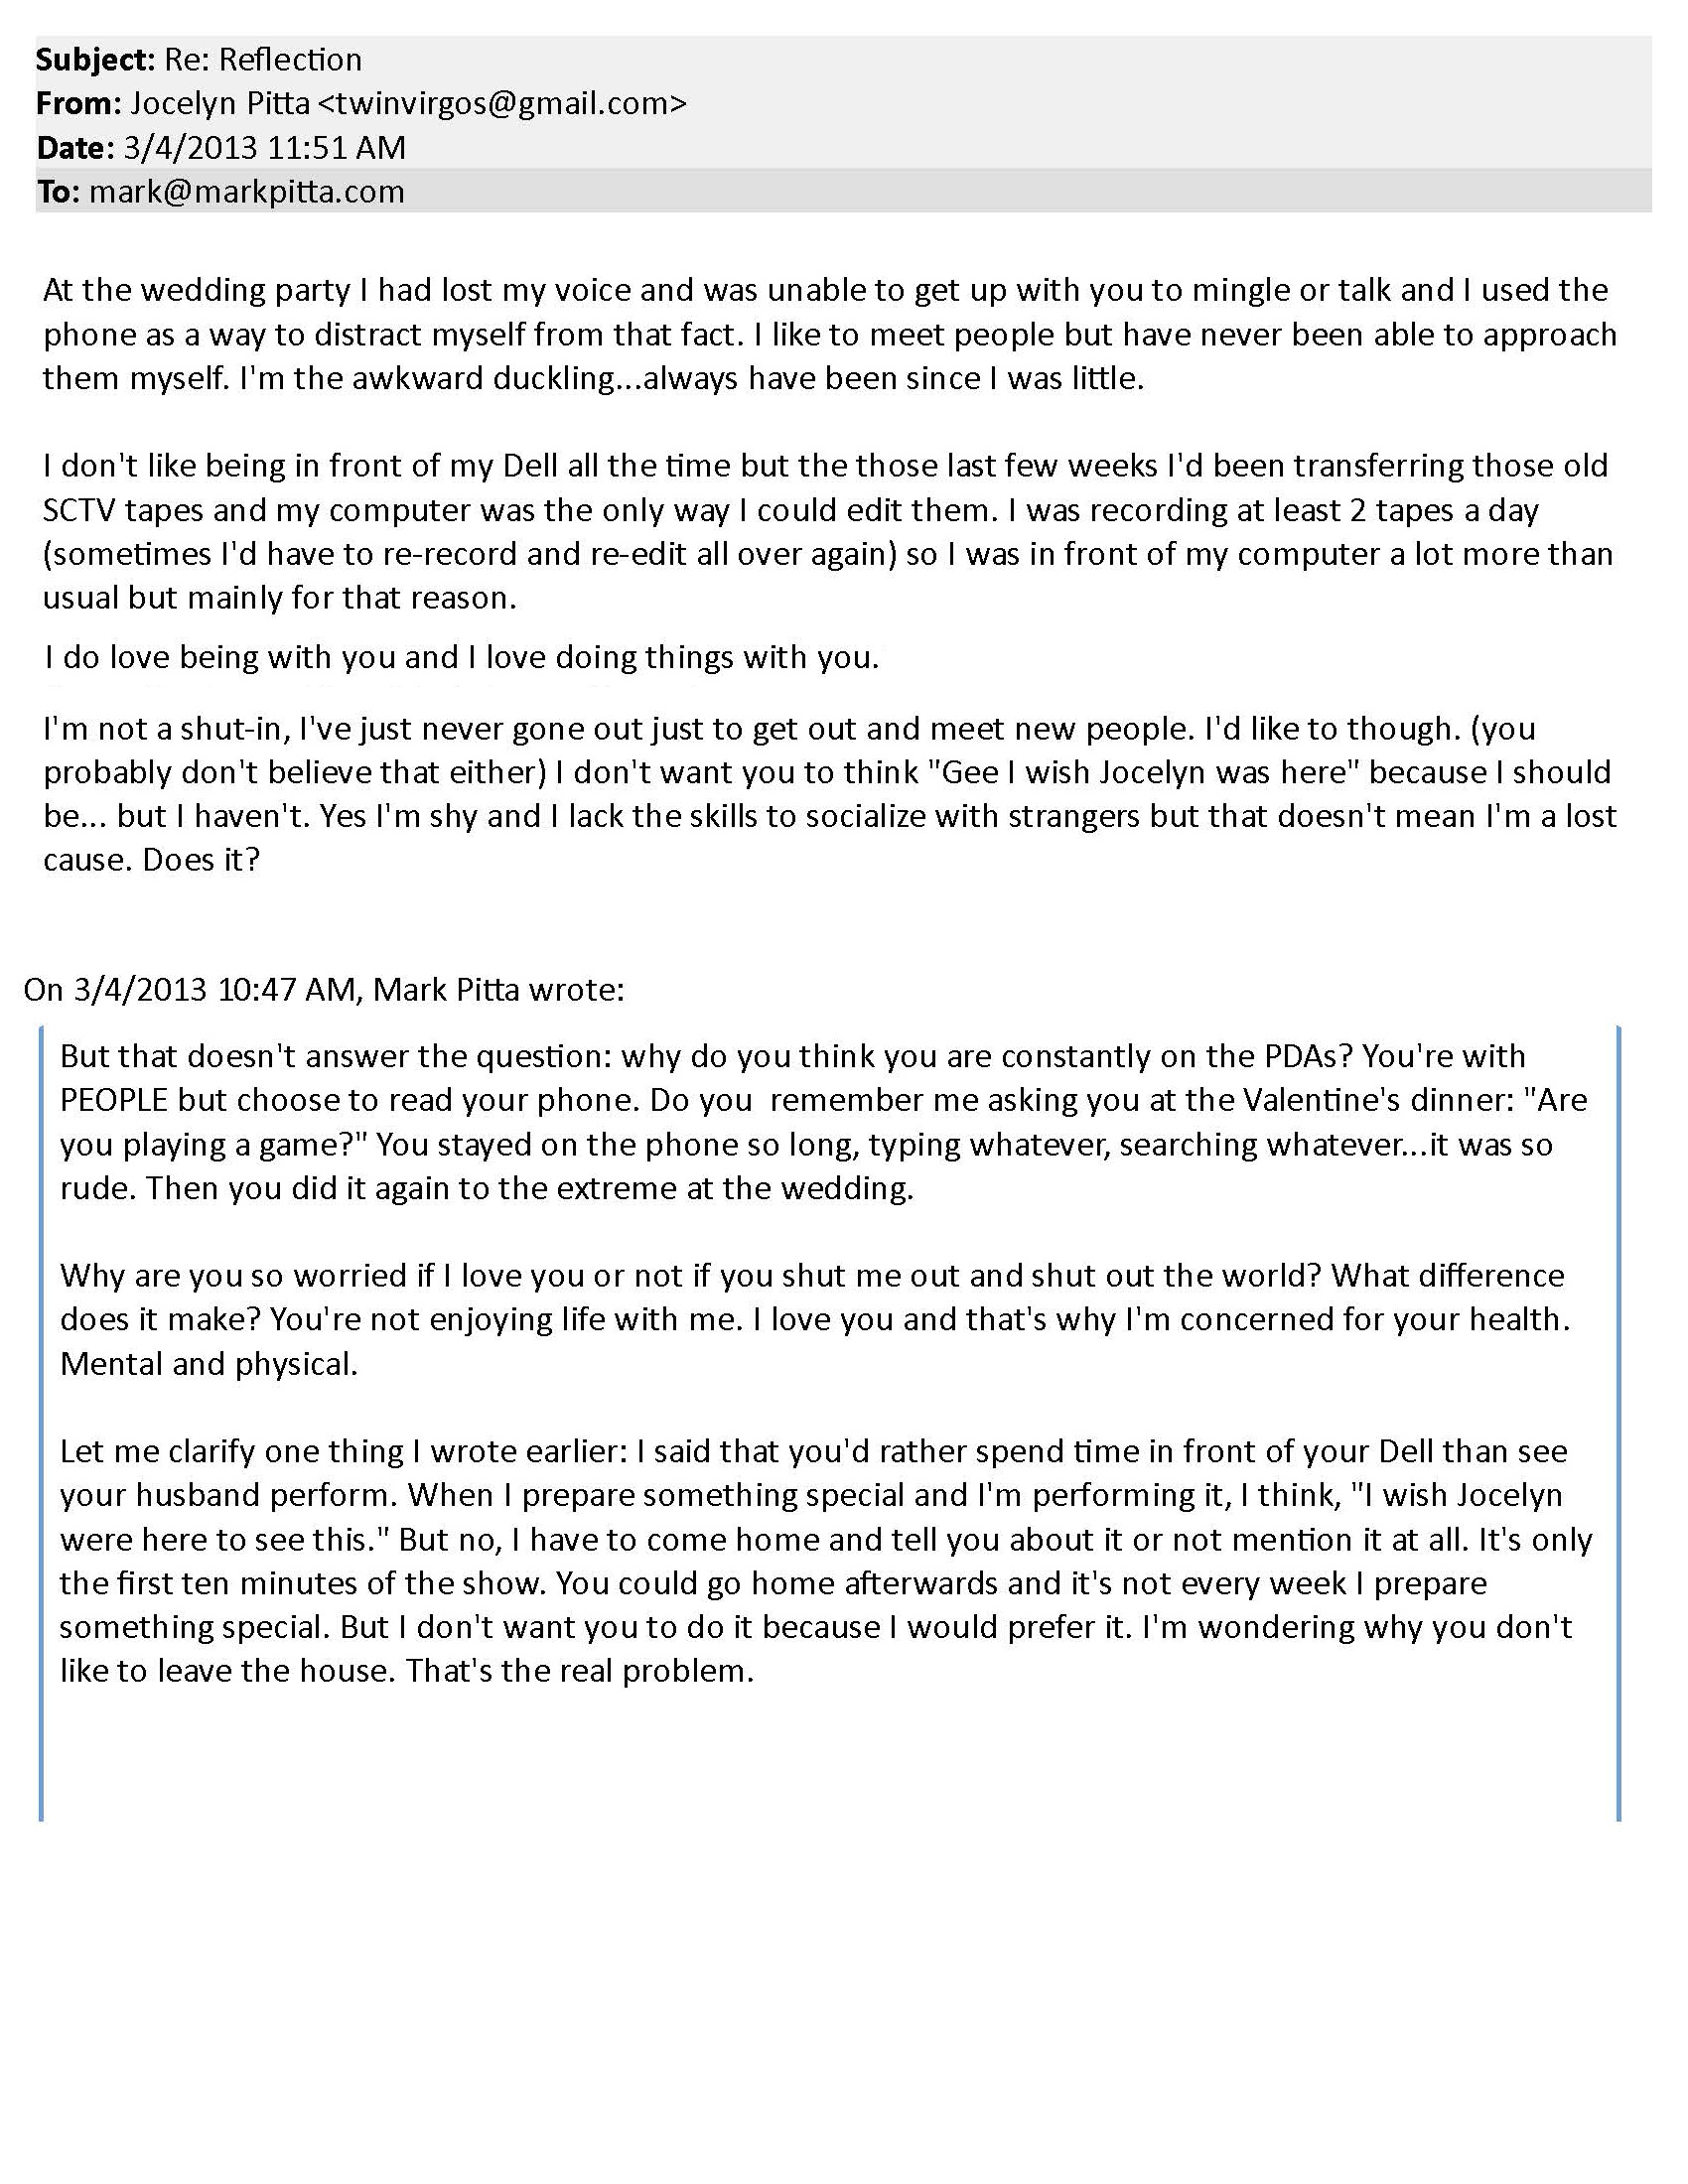 mark pitta a sick wife will be punished and thrown out pt  mark pitta email reflections pg 3